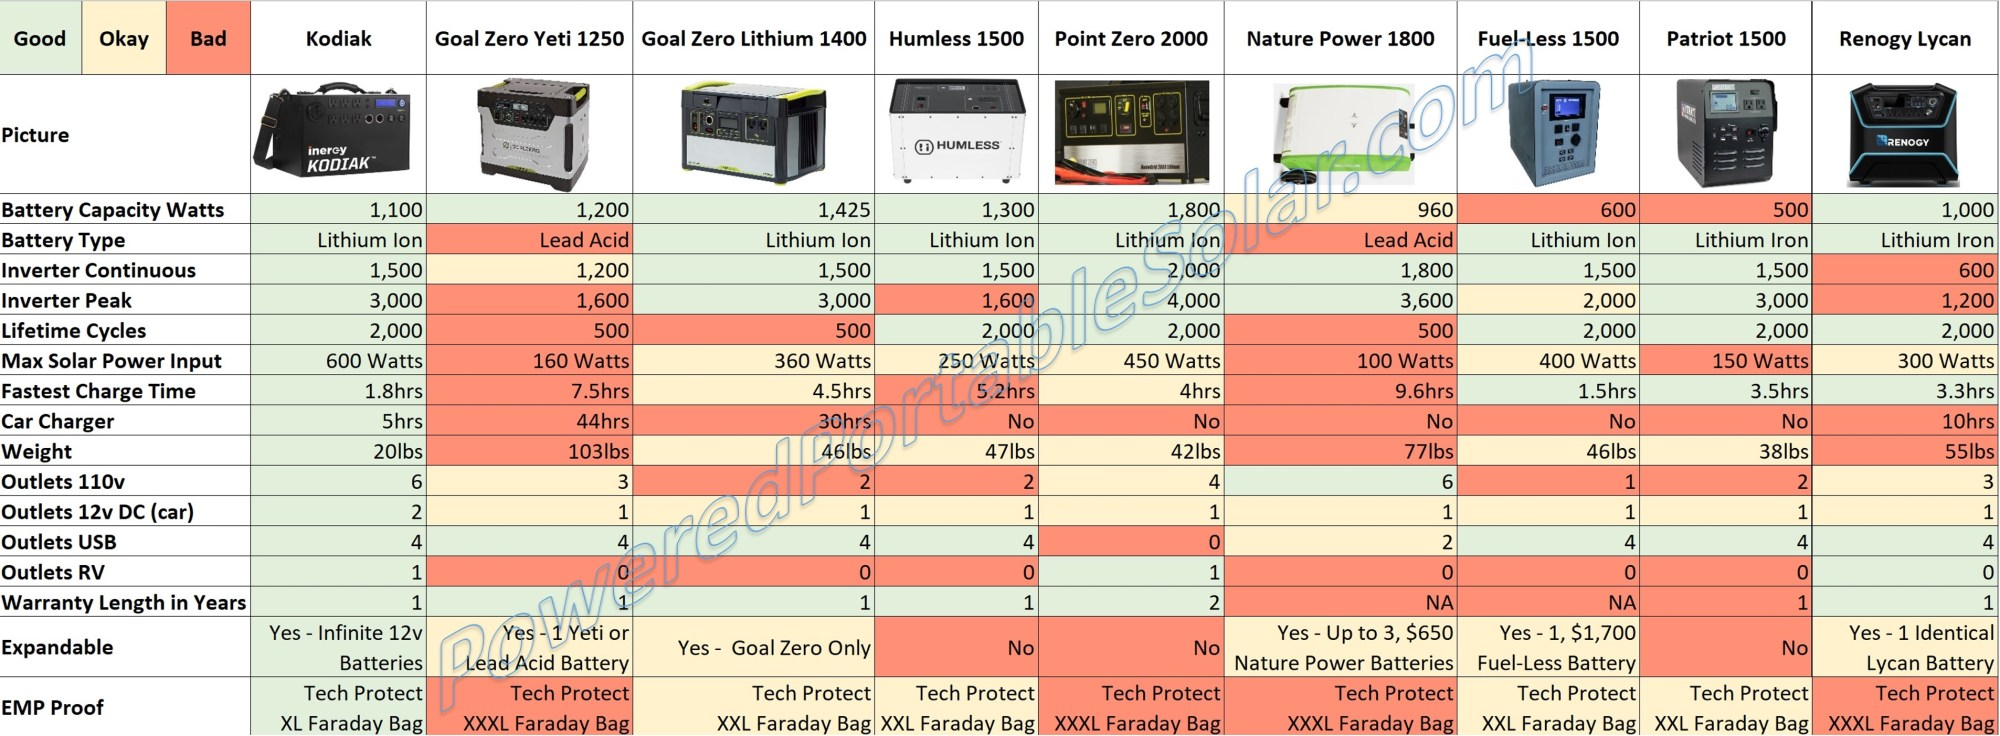 hight resolution of i got a hold of all the user manuals and talked individually with these companies and put together my findings on what each solar generator could actually